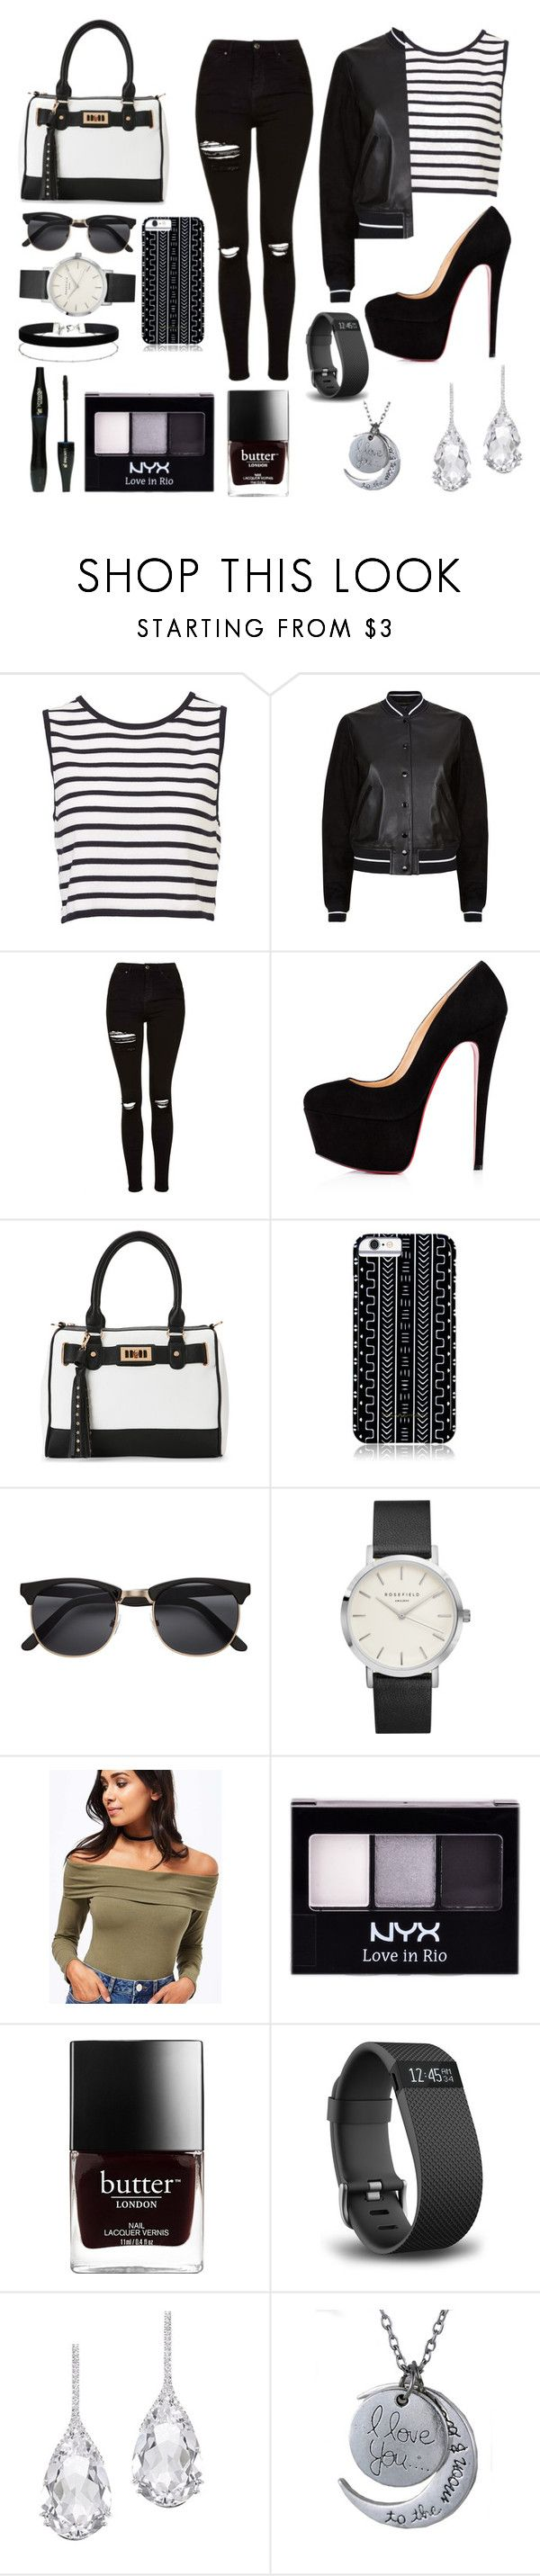 """""""Black and white:)"""" by lucyvha ❤ liked on Polyvore featuring rag & bone, Topshop, Christian Louboutin, IMoshion, Savannah Hayes, H&M, Miss Selfridge, Lancôme, NYX and Fitbit"""